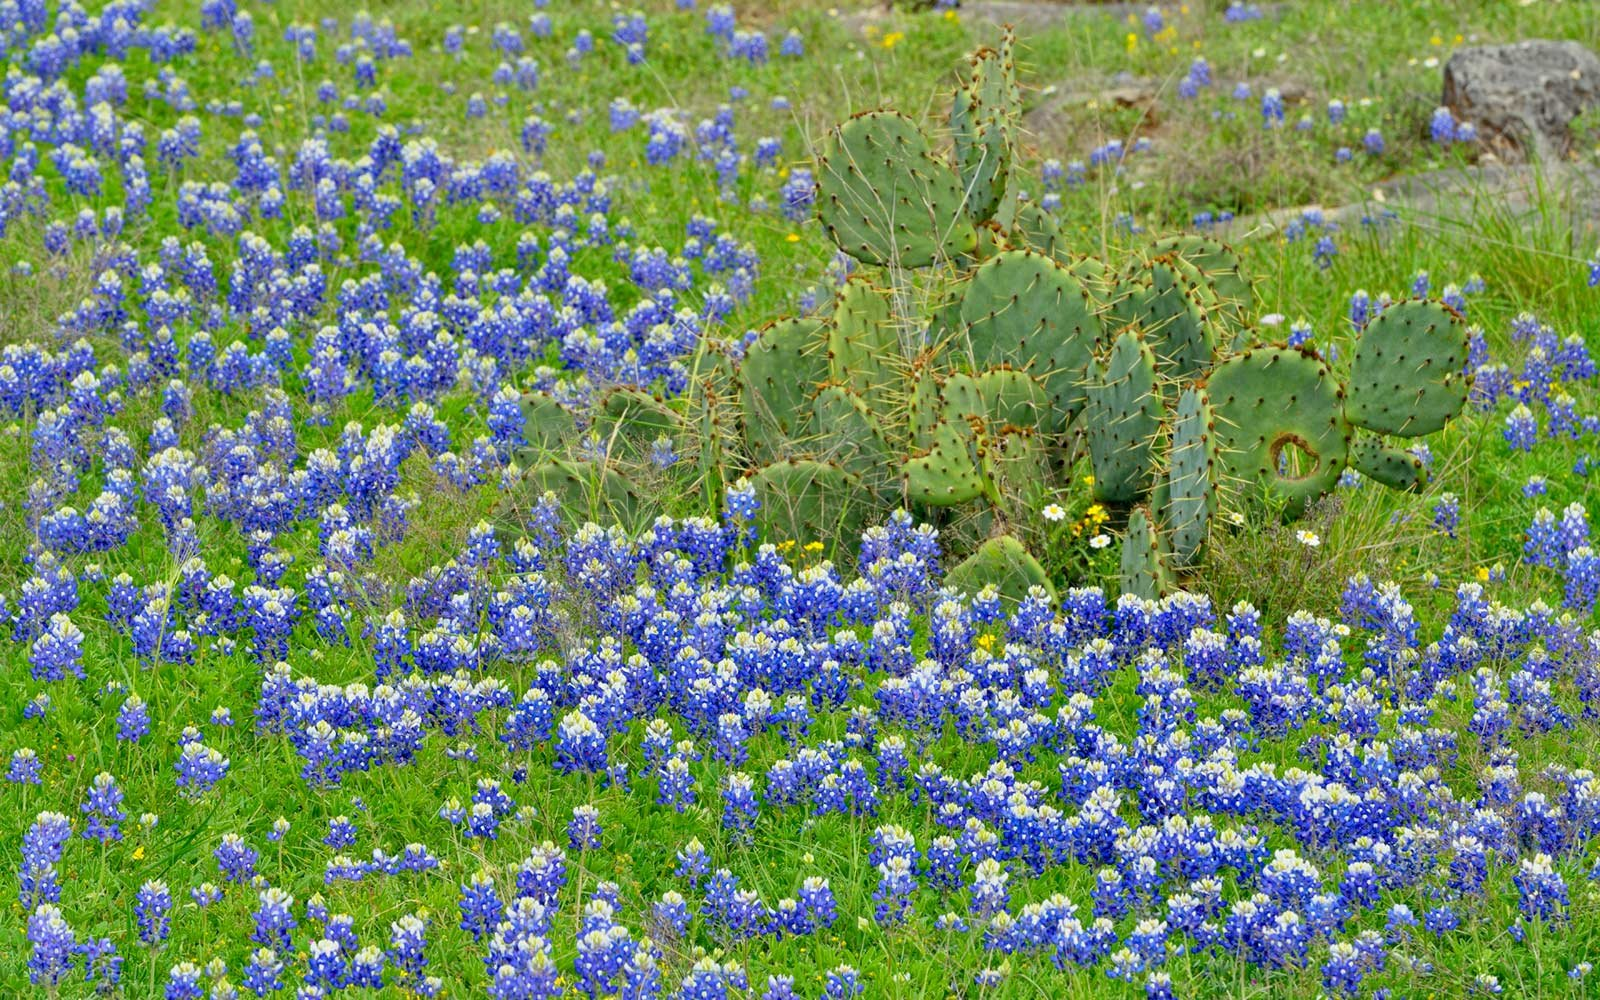 Bluebonnet Festival, Burnet, Texas